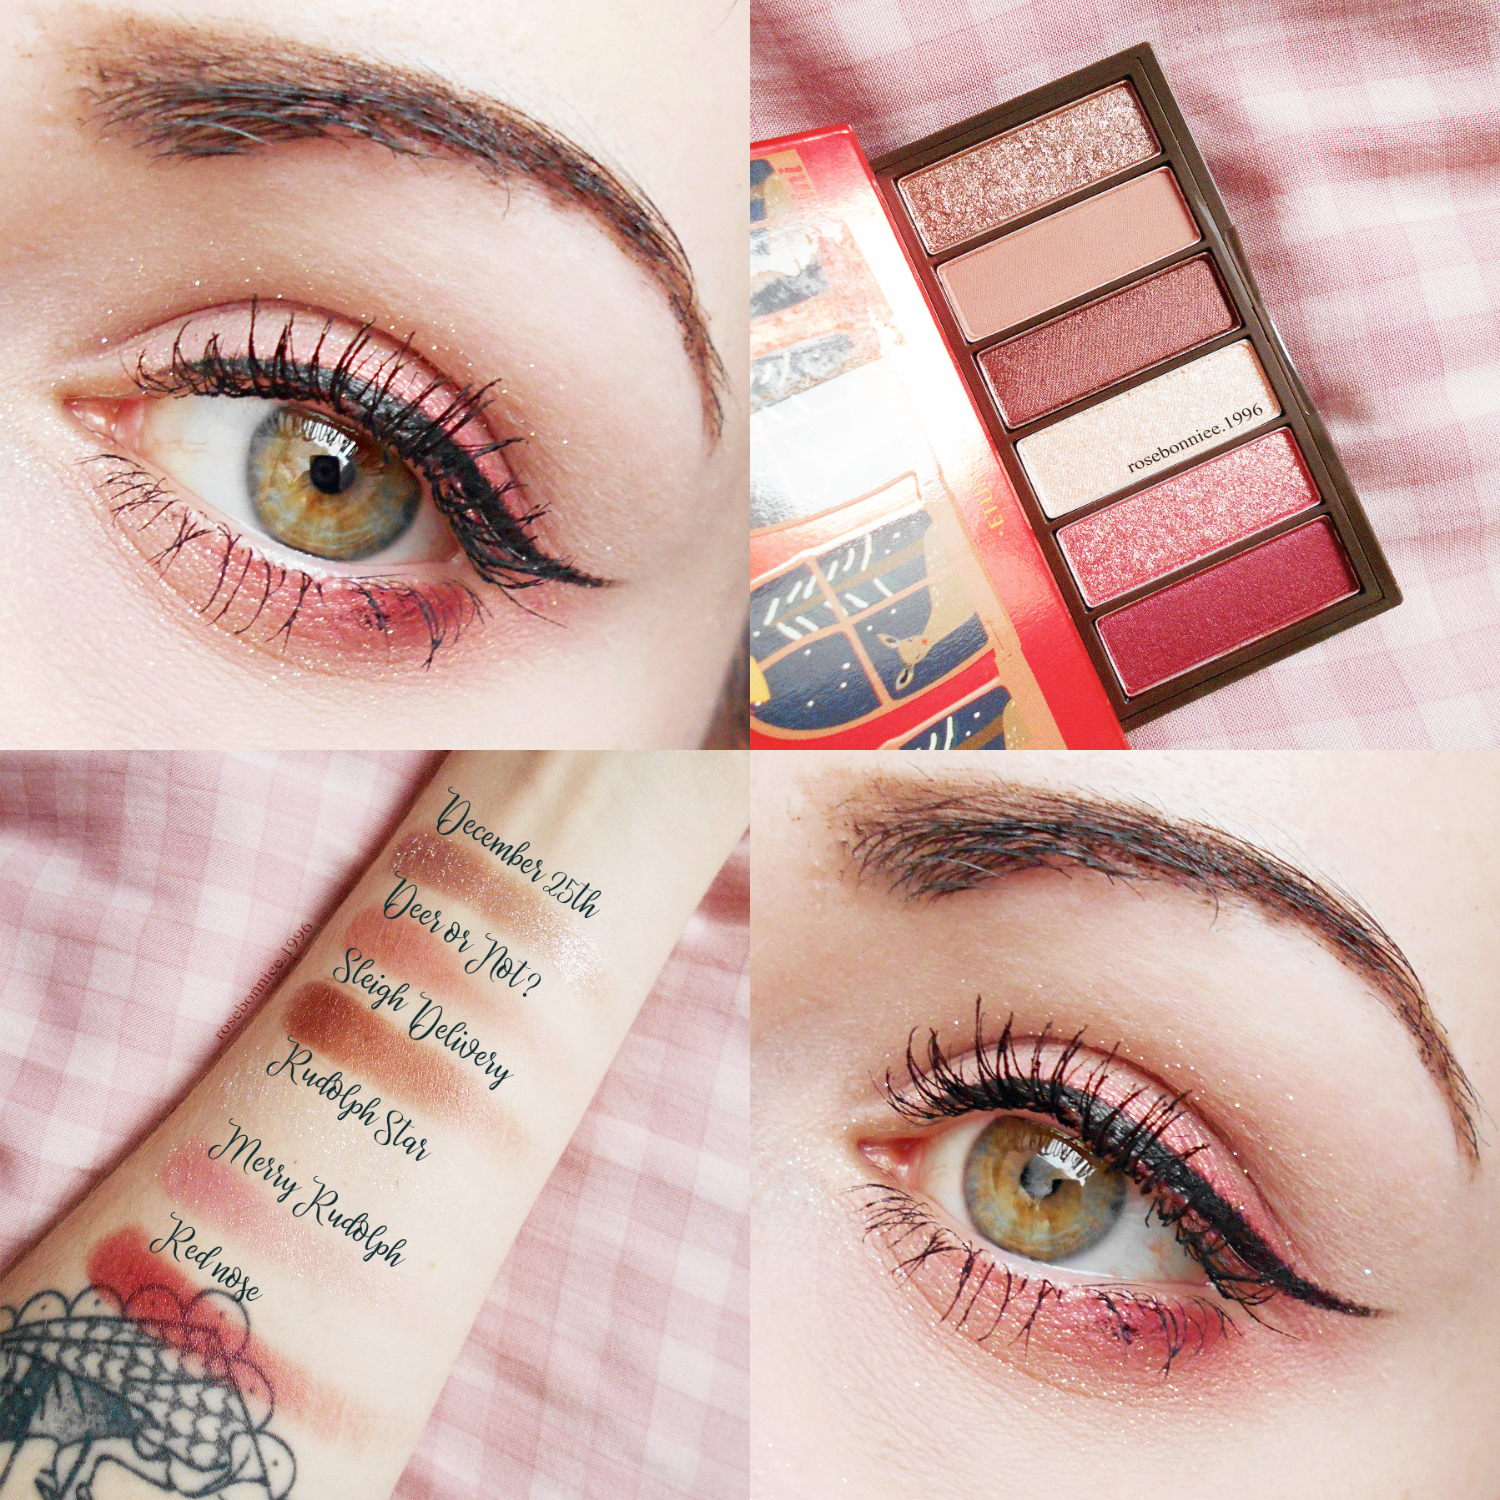 Etude House Play Color Eyes Mini Palette Rudolph Holiday Edition swatches